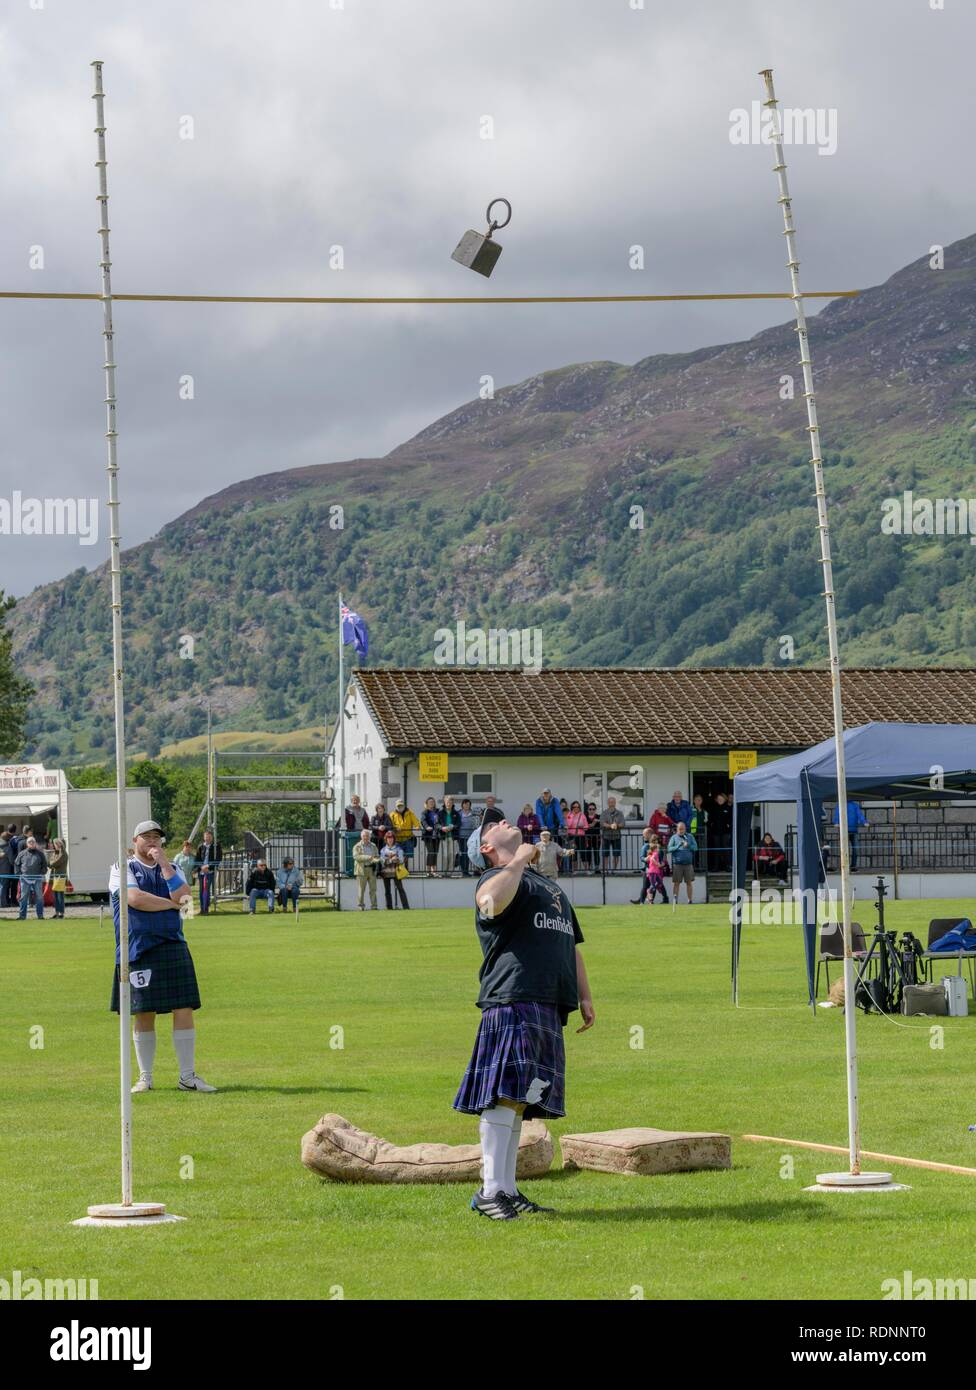 Weight for height contest, Highland Games, Newtonmore, Scotland, United Kingdom - Stock Image